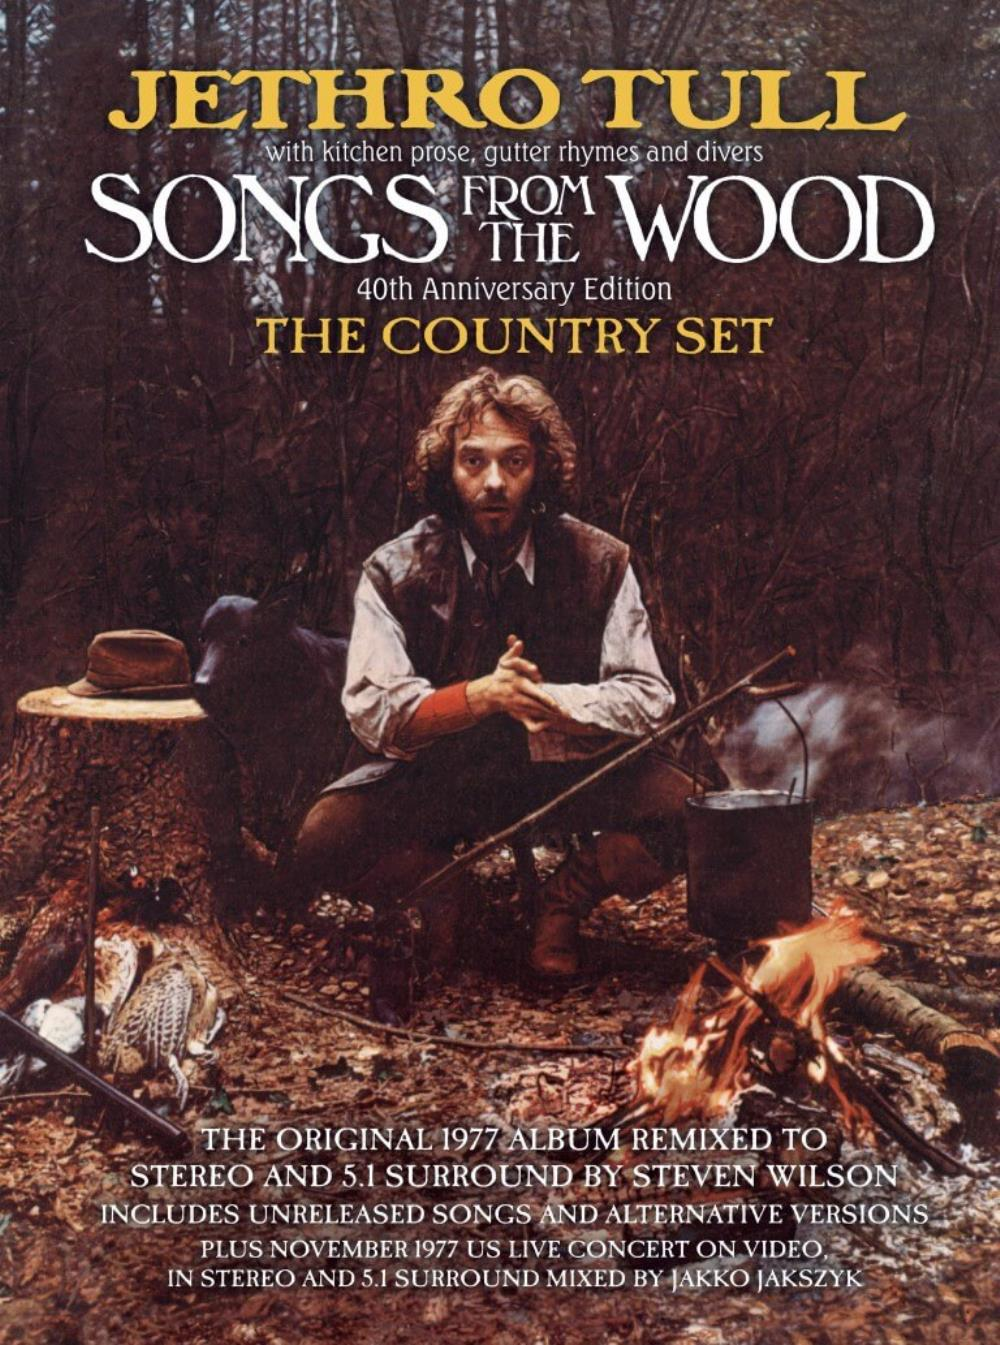 Jethro Tull - Songs From The Wood - 40th Anniversary Edition - The Country Set CD (album) cover